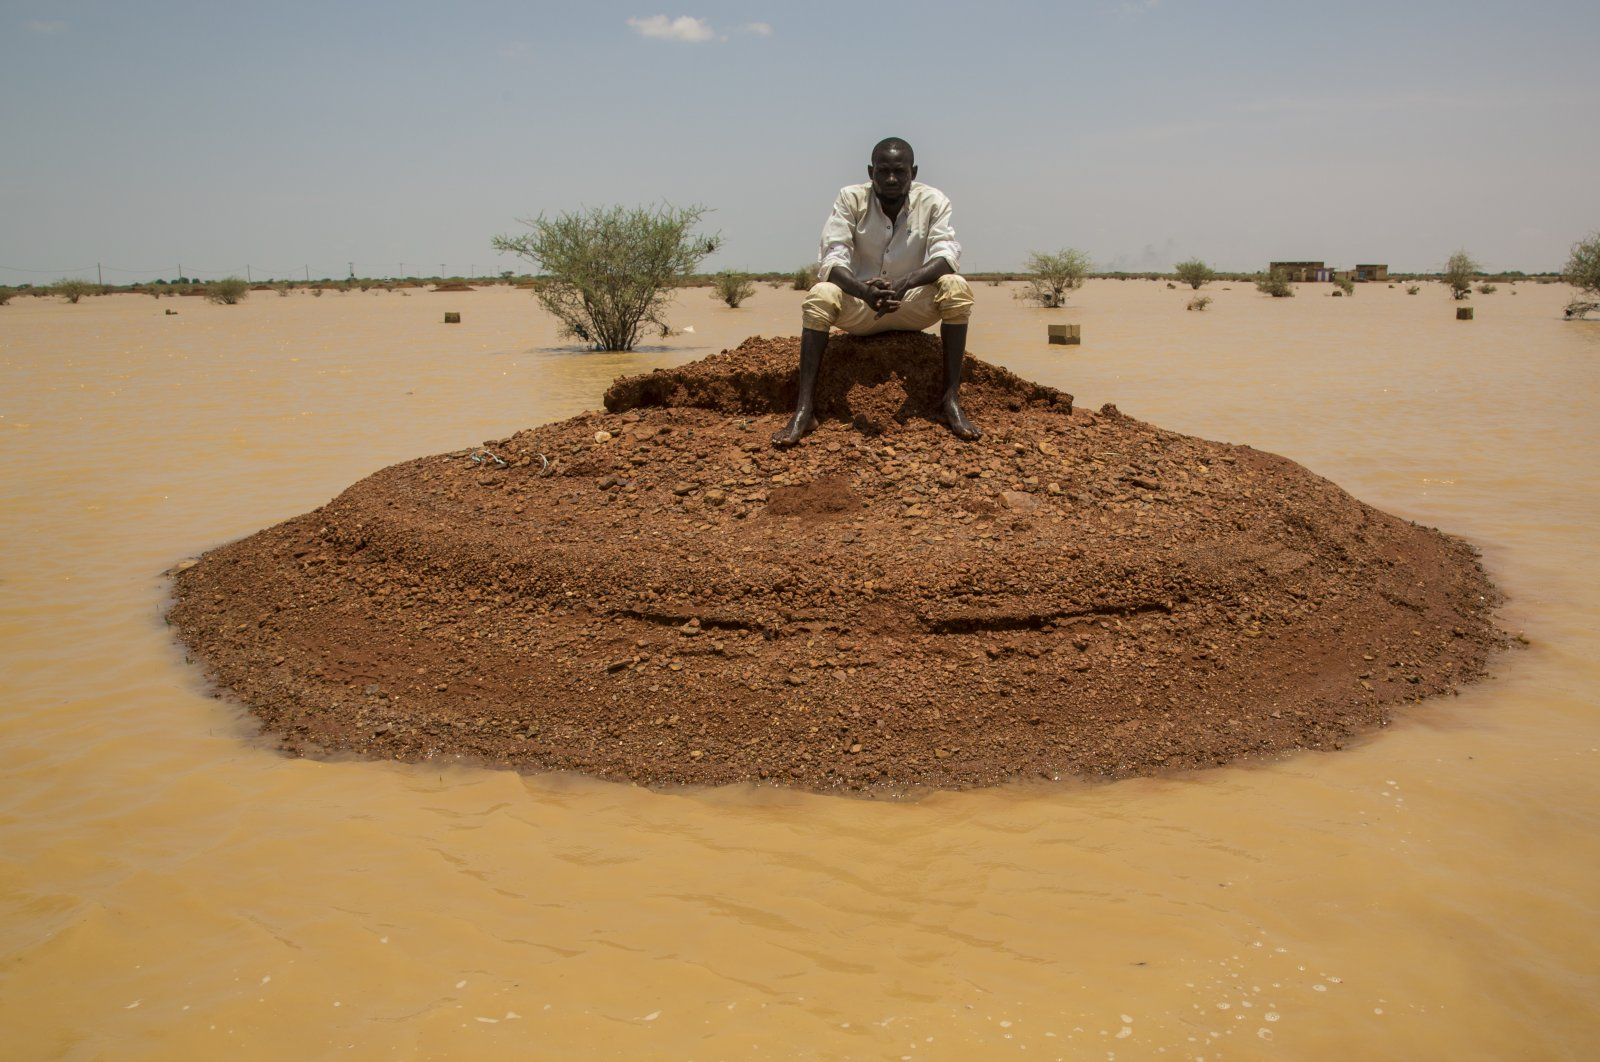 A man sits on a mound of earth surrounded by floodwaters brought on by seasonal torrential rains in the village of Al-Nazile in northeastern Sudan, Aug. 3, 2020. (AA Photo)